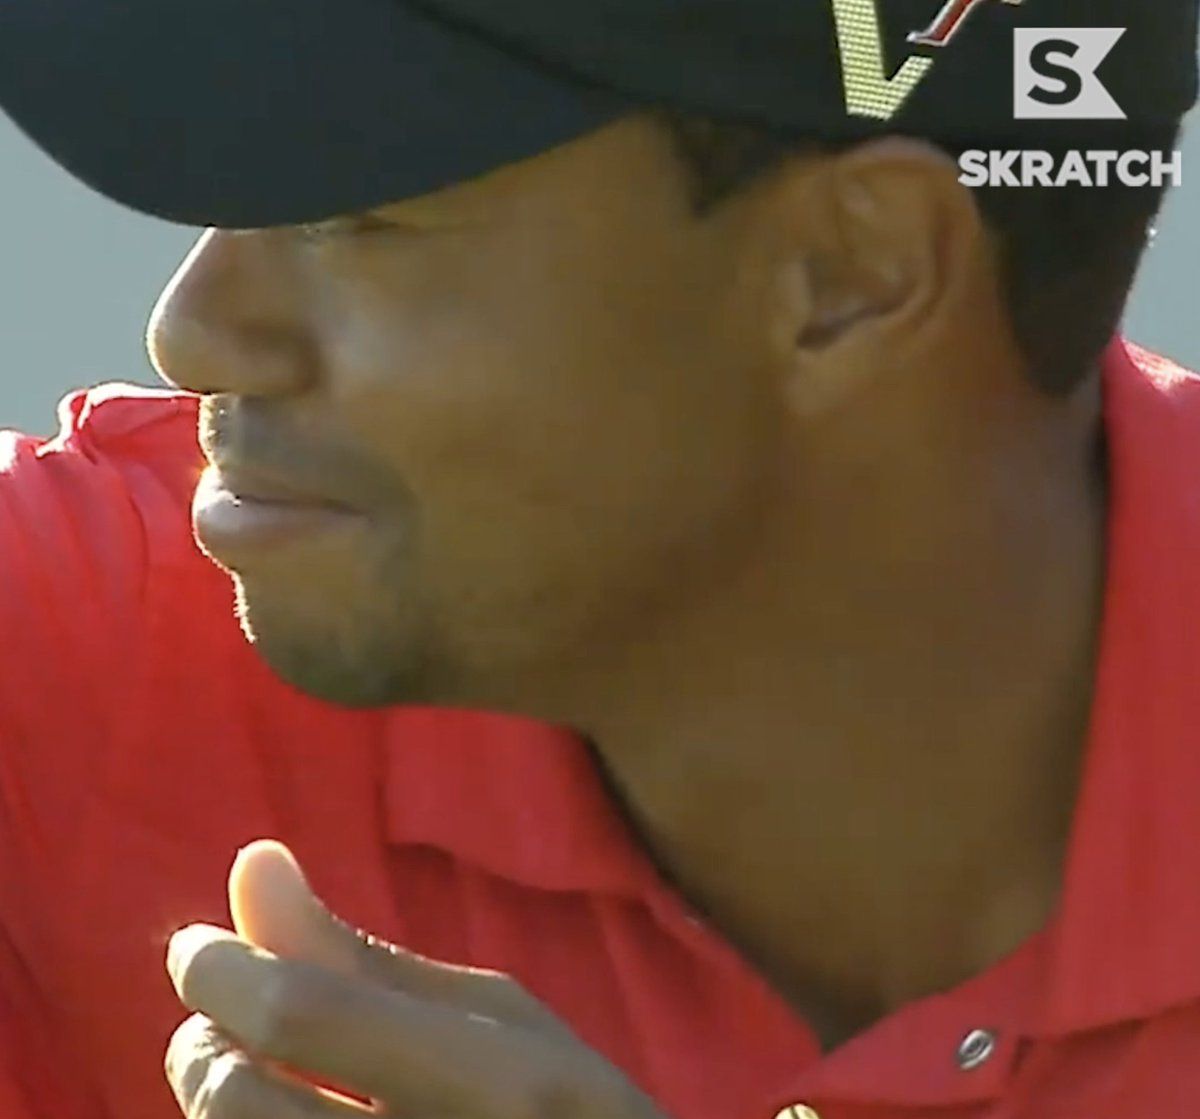 He did it. Tiger Woods has won the TOUR Championship.